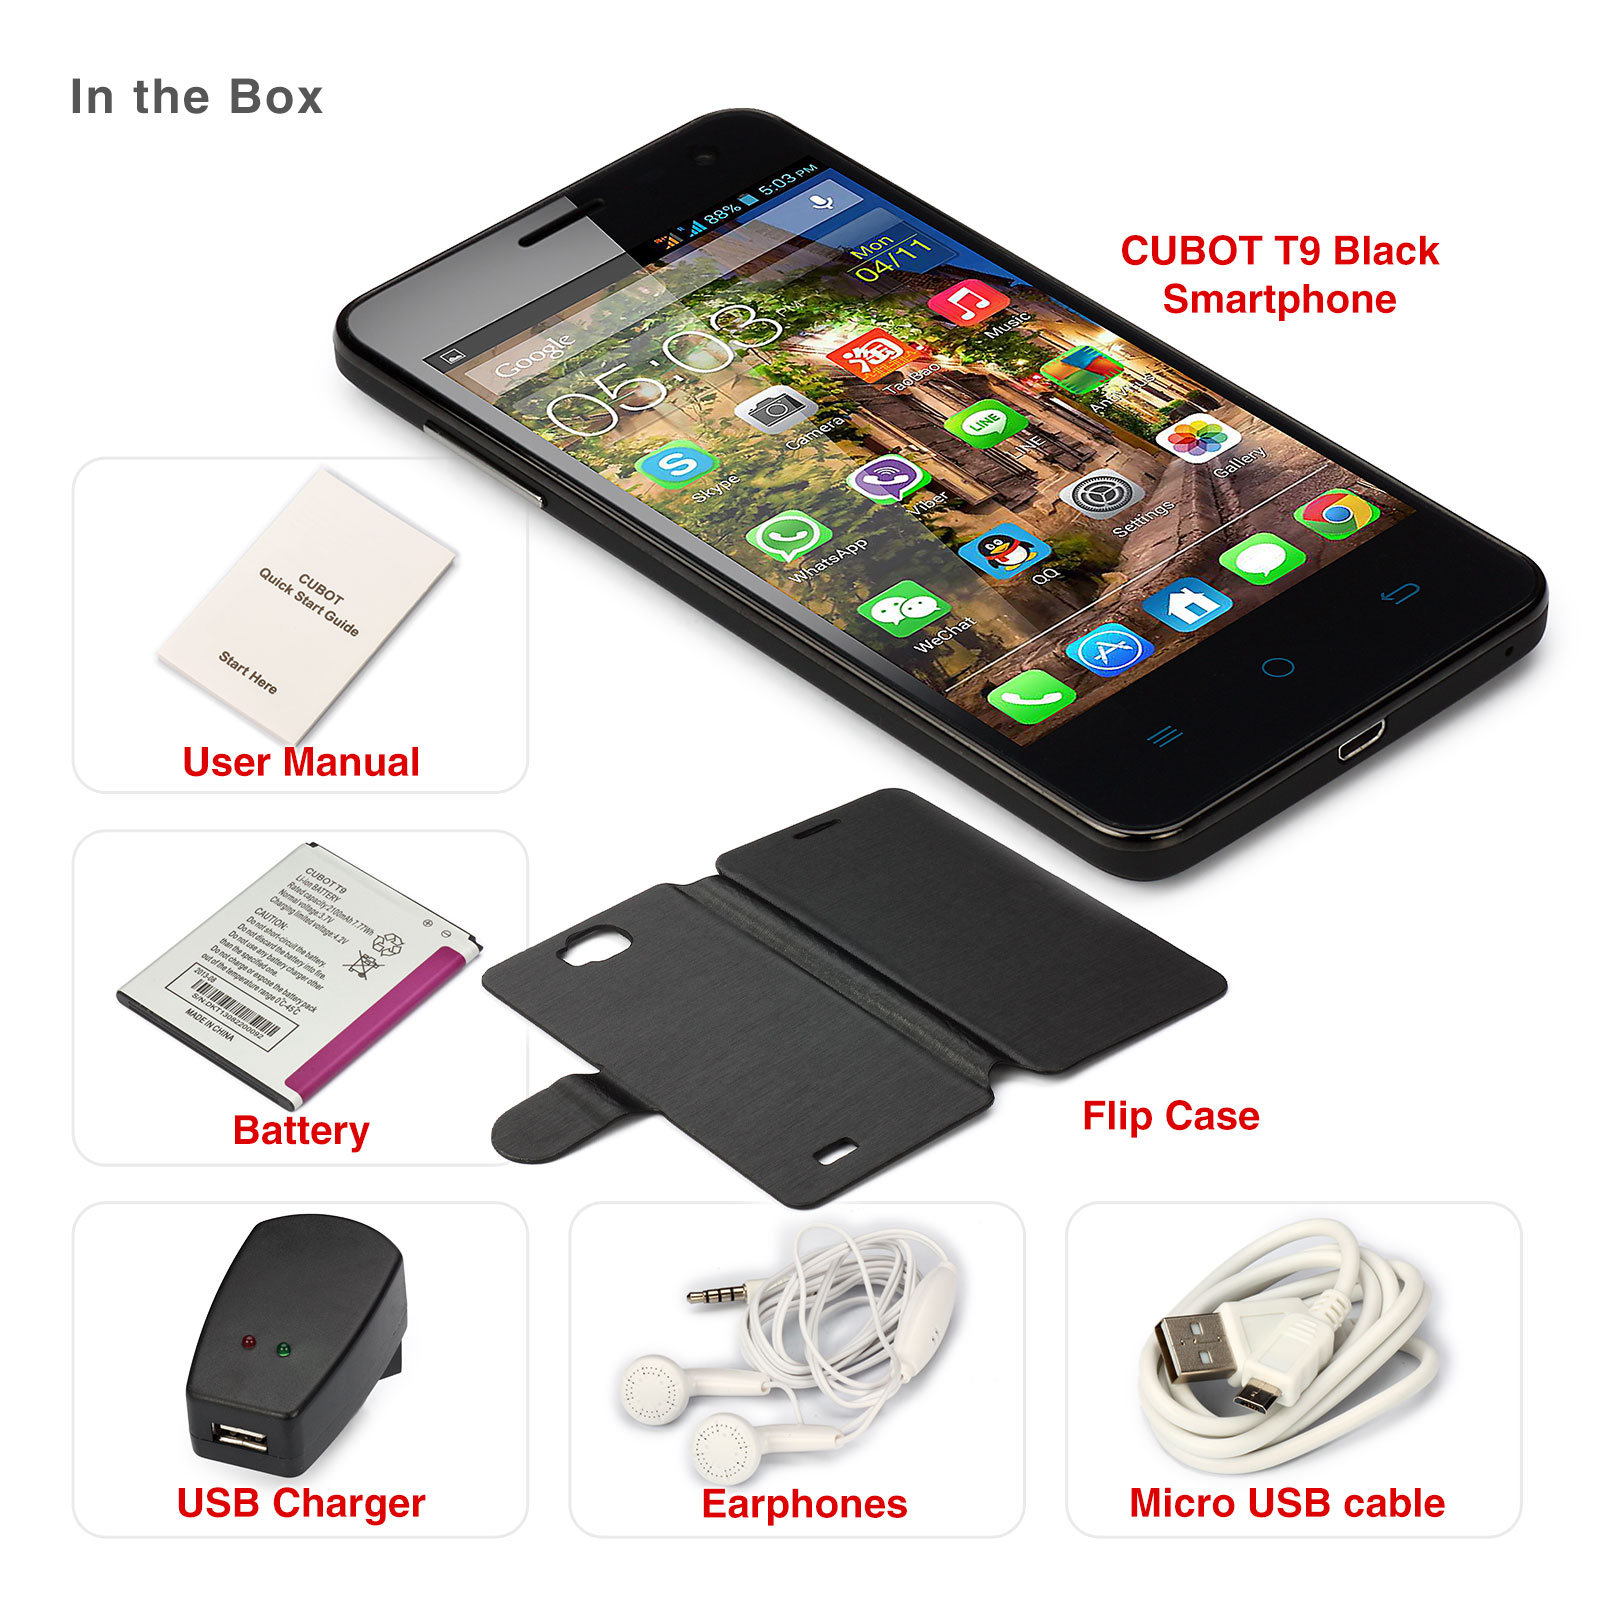 "CUBOT T9 Unlocked Smartphone 3G Wifi Dual SIM Quad Core 5.0"" IPS HD Touch Screen Android 16 GB"